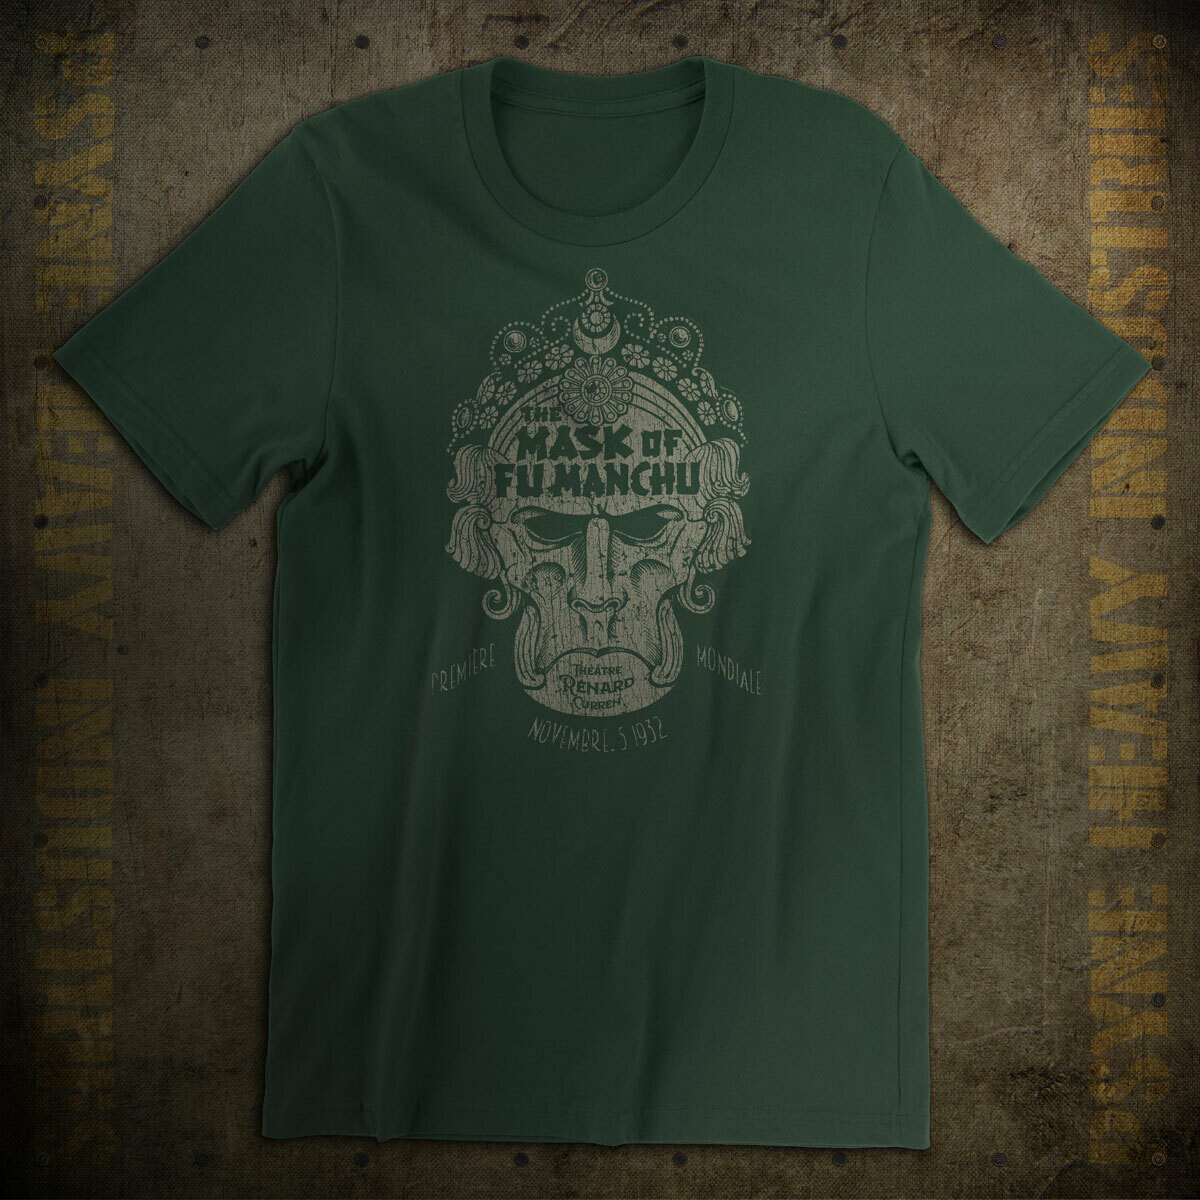 The Mask of Fu Manchu Vintage 1932 T-Shirt